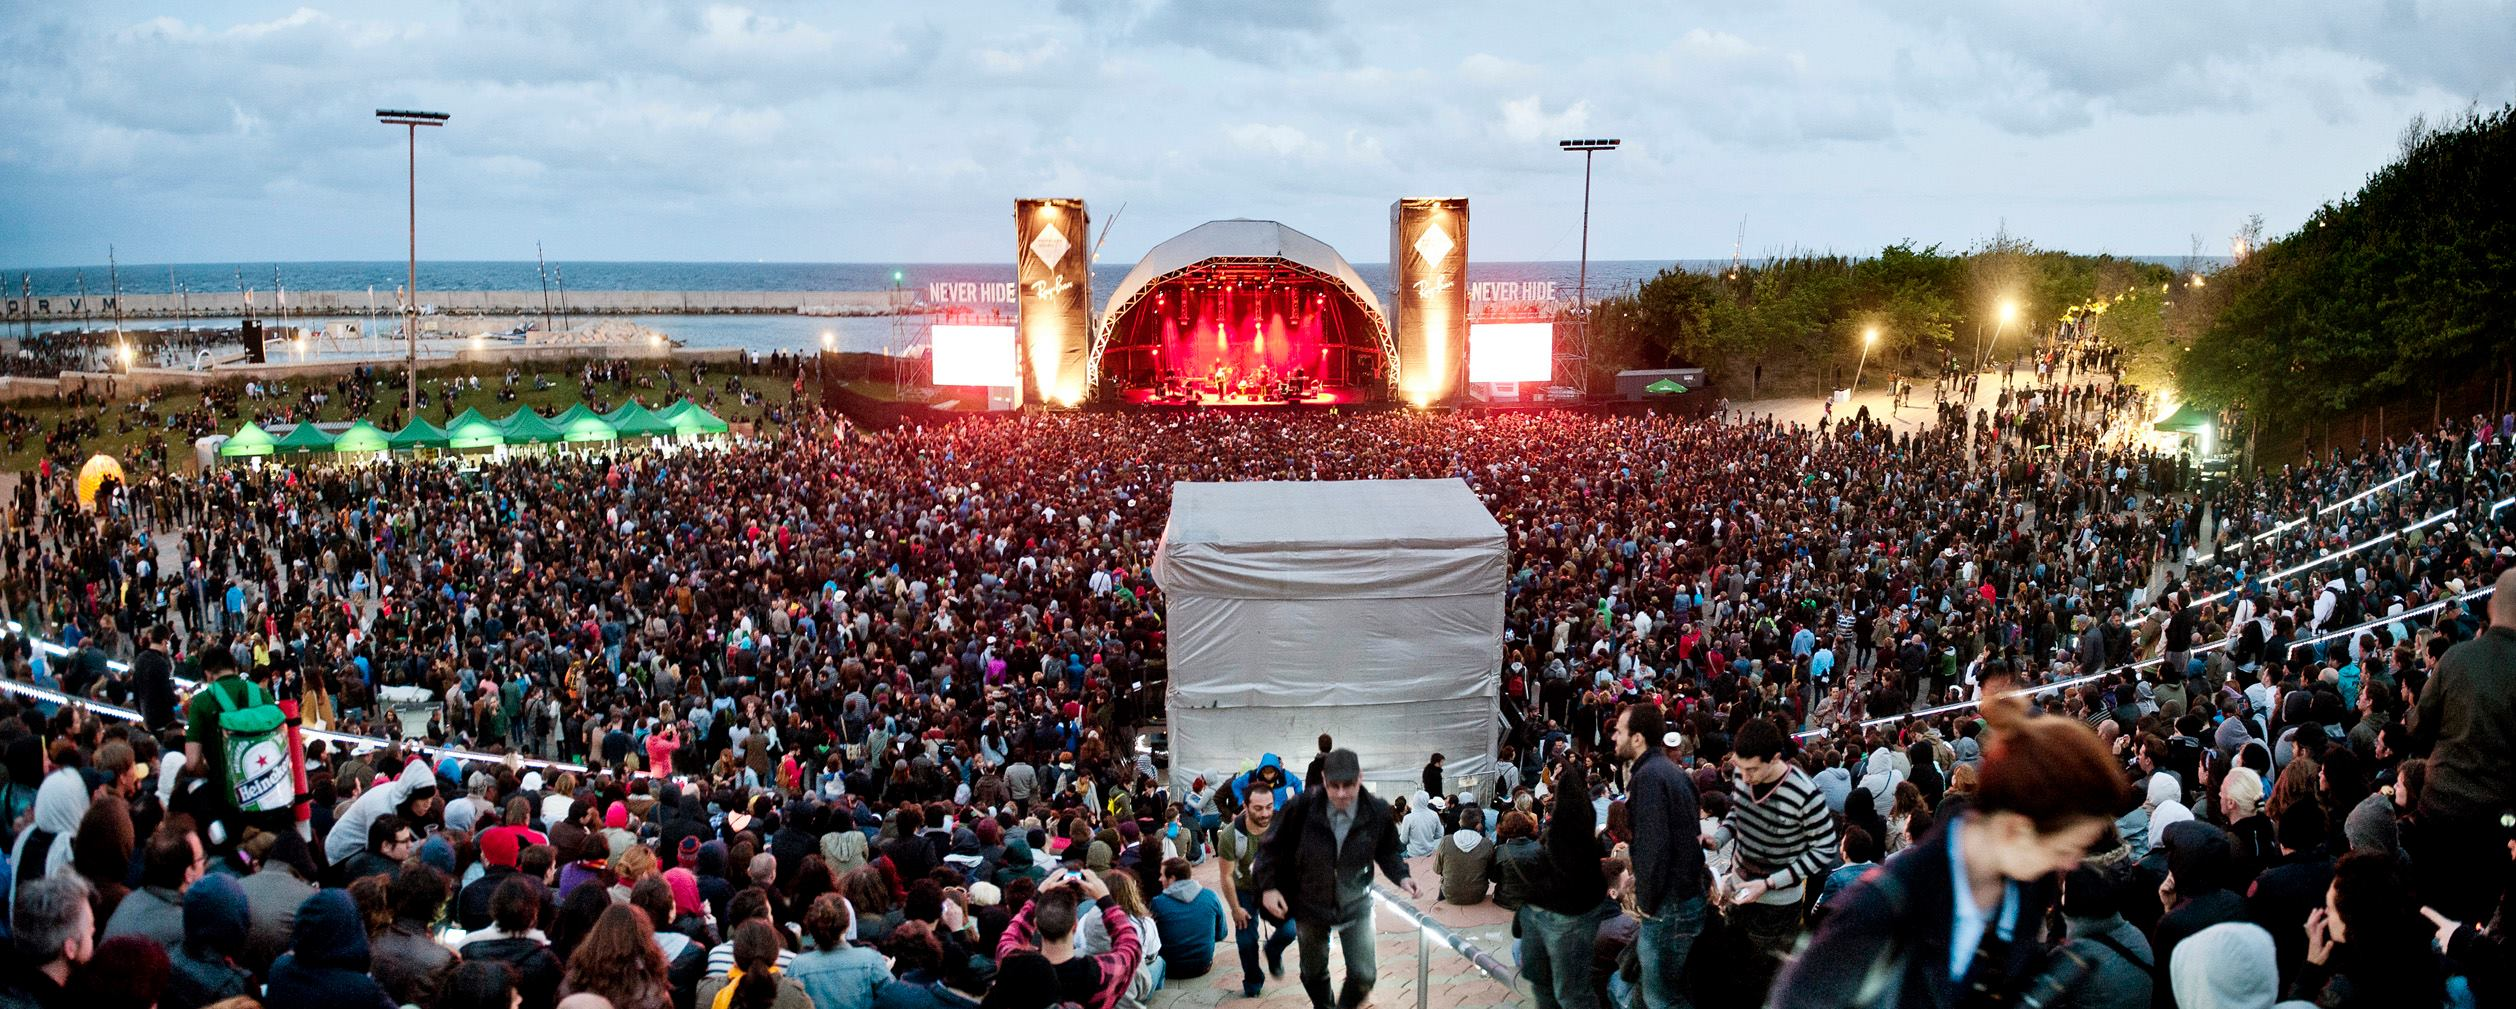 primavera sound recintos